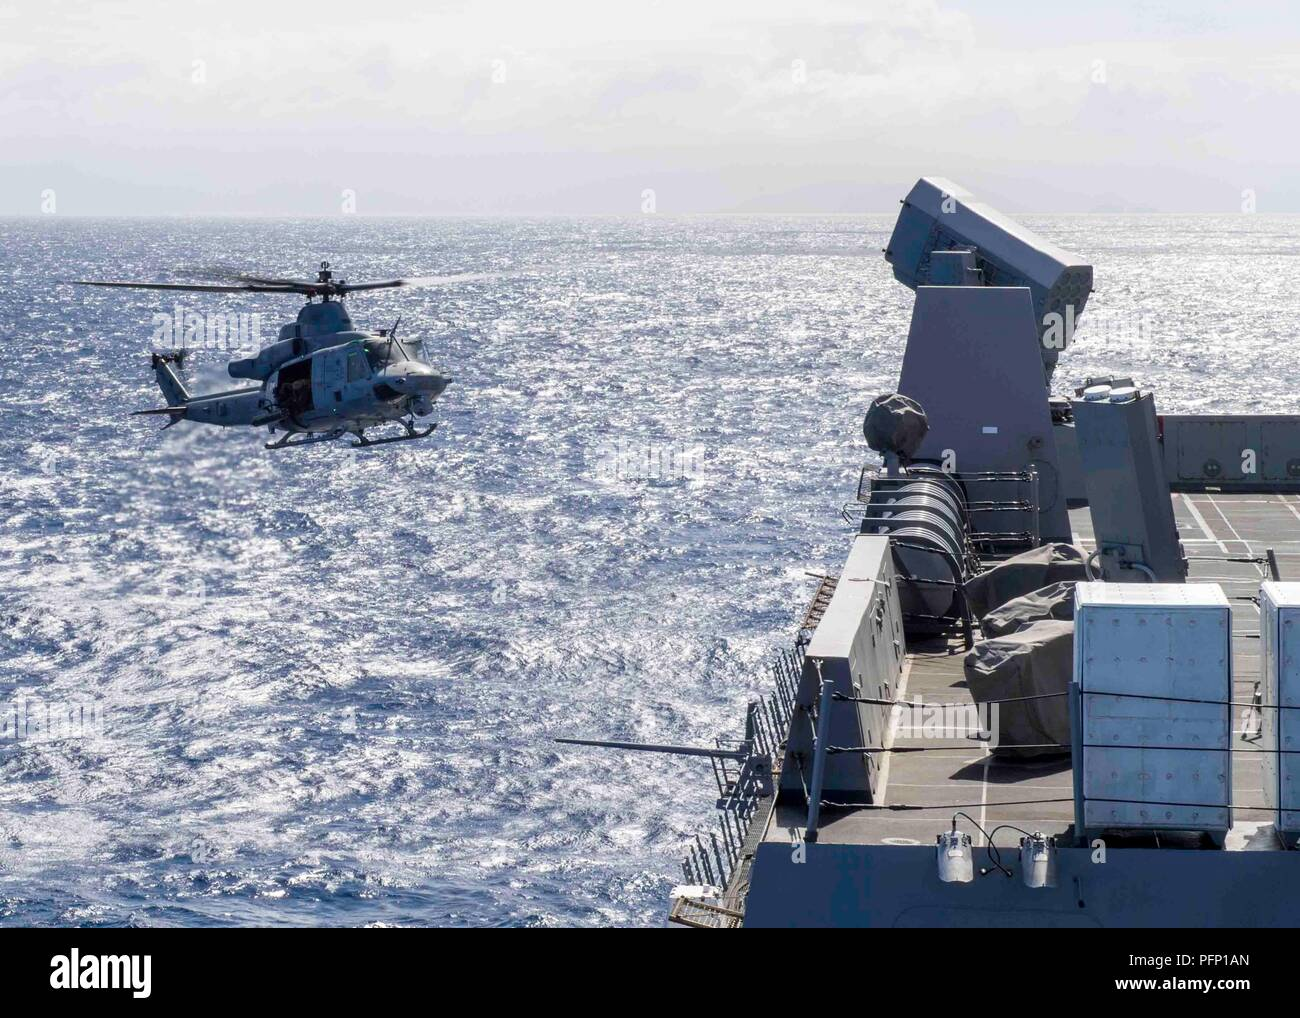 180727-N-PH222-0027 PACIFIC OCEAN (July 27, 2018) A UH-1Y Venom helicopter, assigned to Marine Light Attack Helicopter detachment of Marine Medium Tiltrotor Squadron (VMM) 166, prepares to land on the flight deck of San Antonio-class amphibious transport dock USS Anchorage (LPD 23) during a regularly scheduled deployment of Essex Amphibious Ready Group (ARG) and 13th Marine Expeditionary Unit (MEU). The Essex ARG/MEU team is a strong and flexible force equipped and scalable to respond to any crisis ranging from humanitarian assistance and disaster relief to contingency operations. (U.S. Navy p - Stock Image